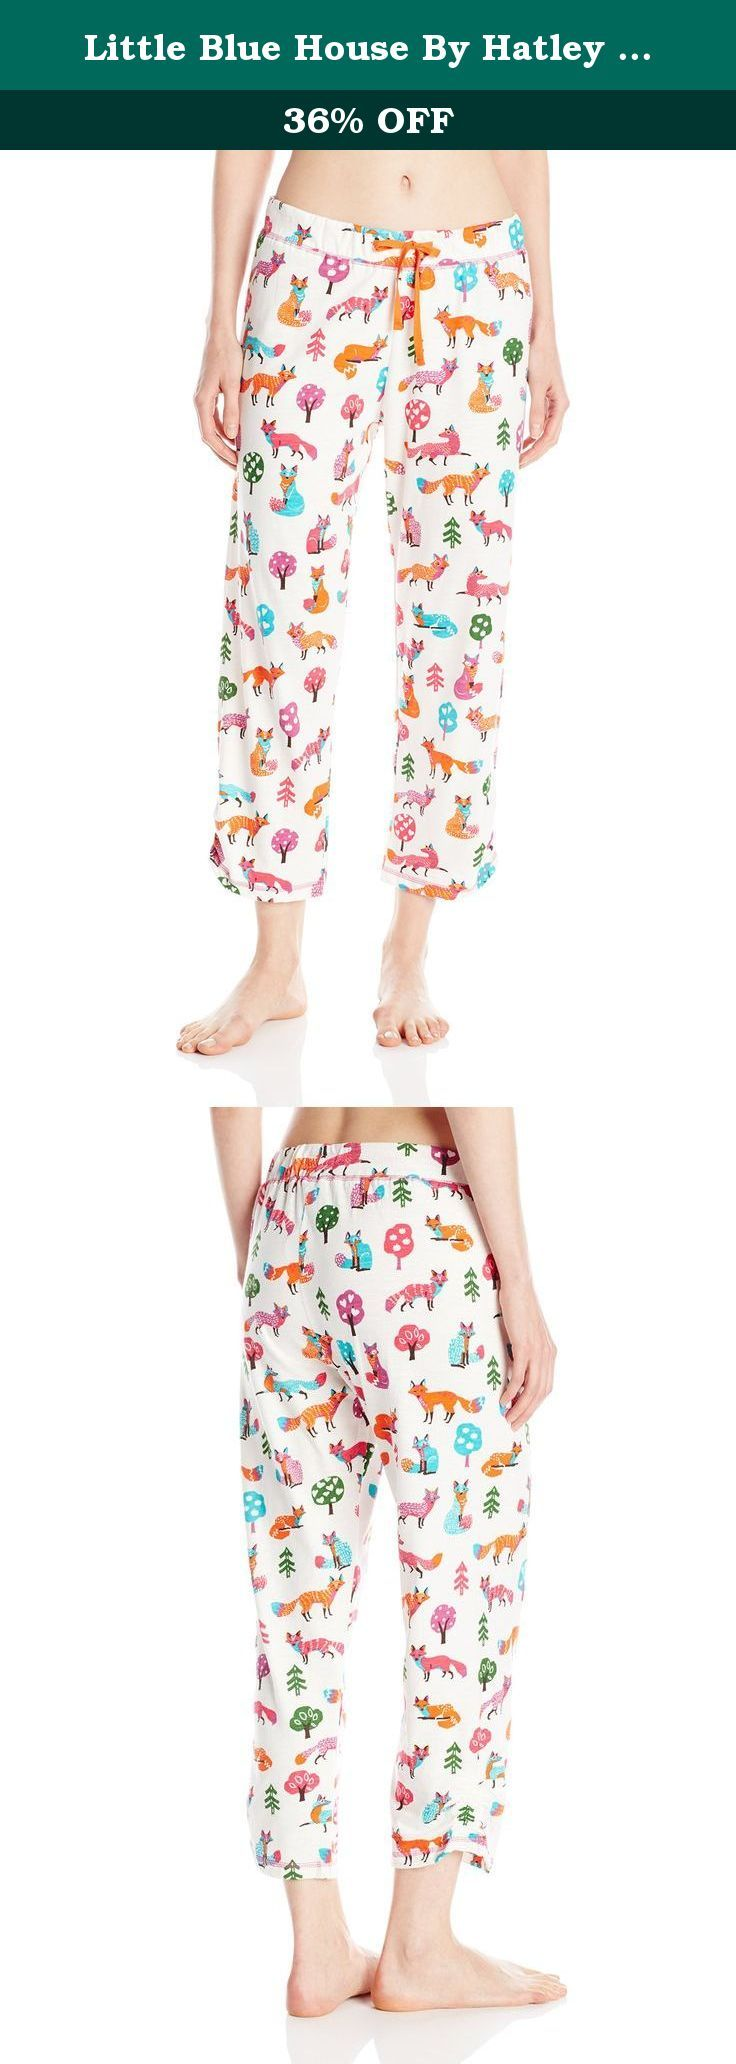 Little Blue House By Hatley Women's LBH Party Fox Ladies Pajama Capris, Cream, Small. Keep cool in these cropped pajama pants! featuring original Hatley overall print designs, drawstring and elastic waist and sweet rouching detail at the hem! look for matching tops.